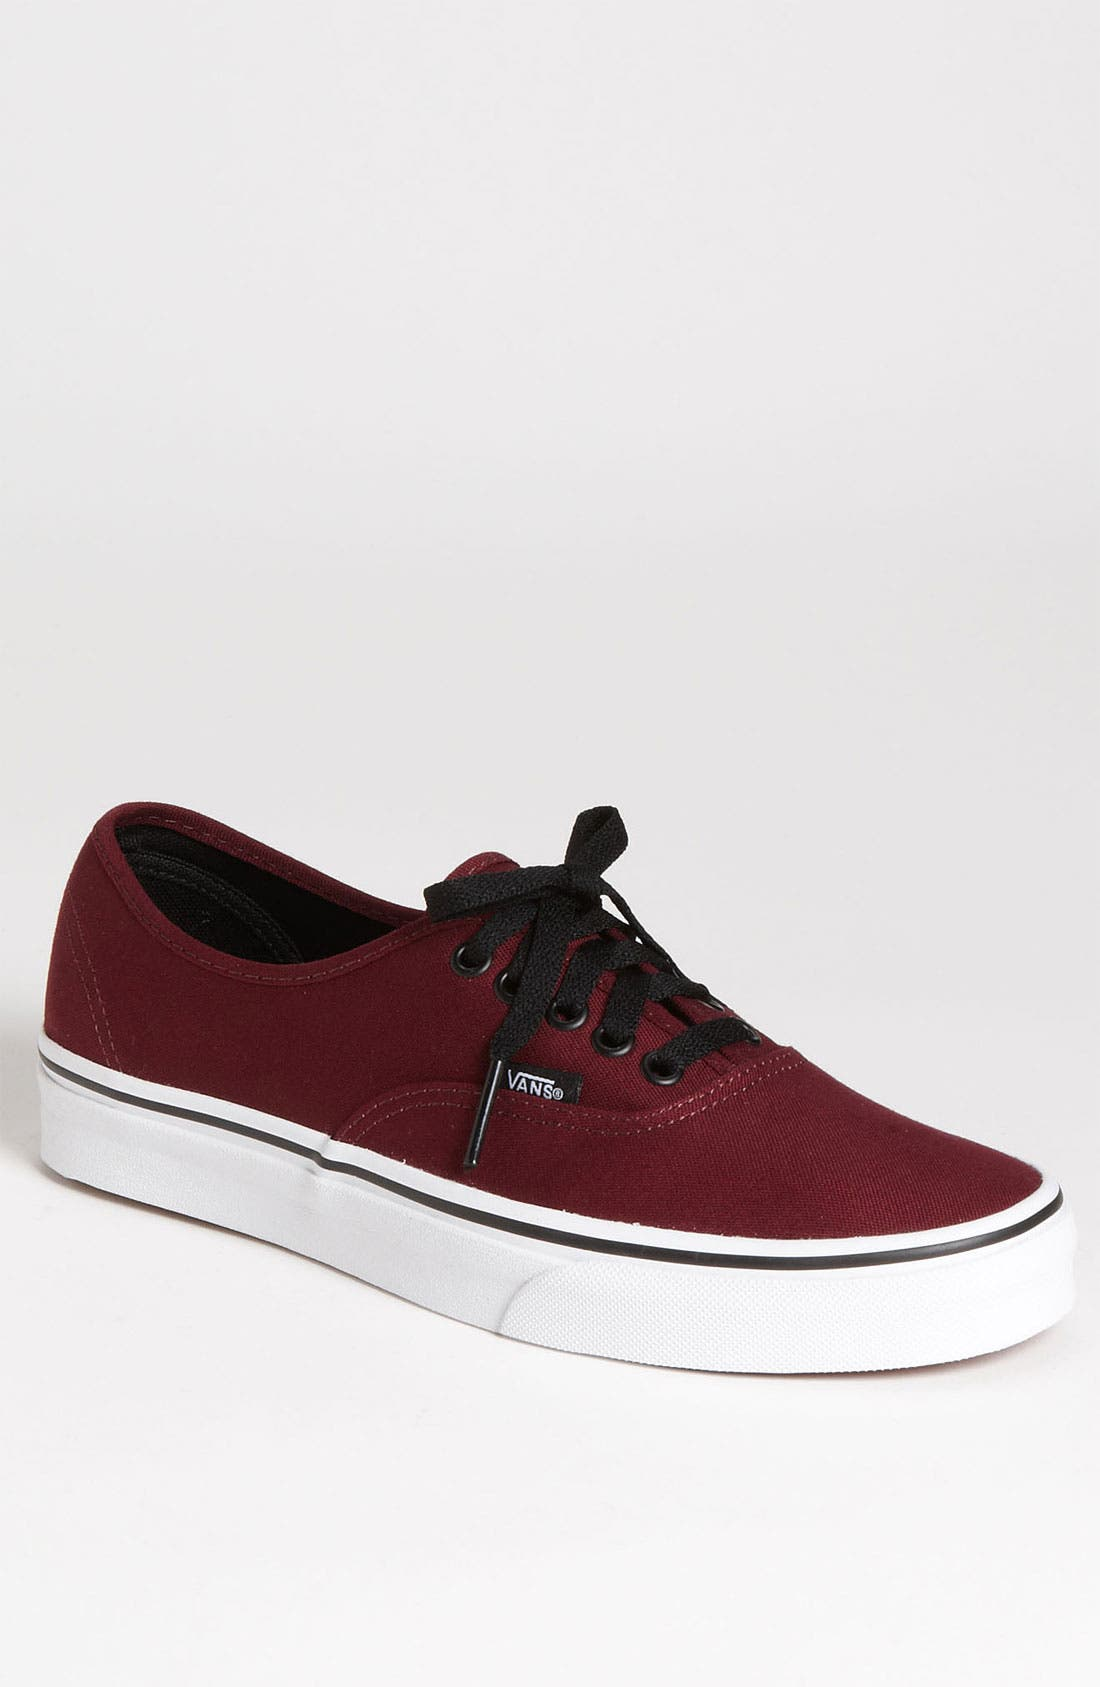 Main Image - Vans 'Authentic' Sneaker (Men)